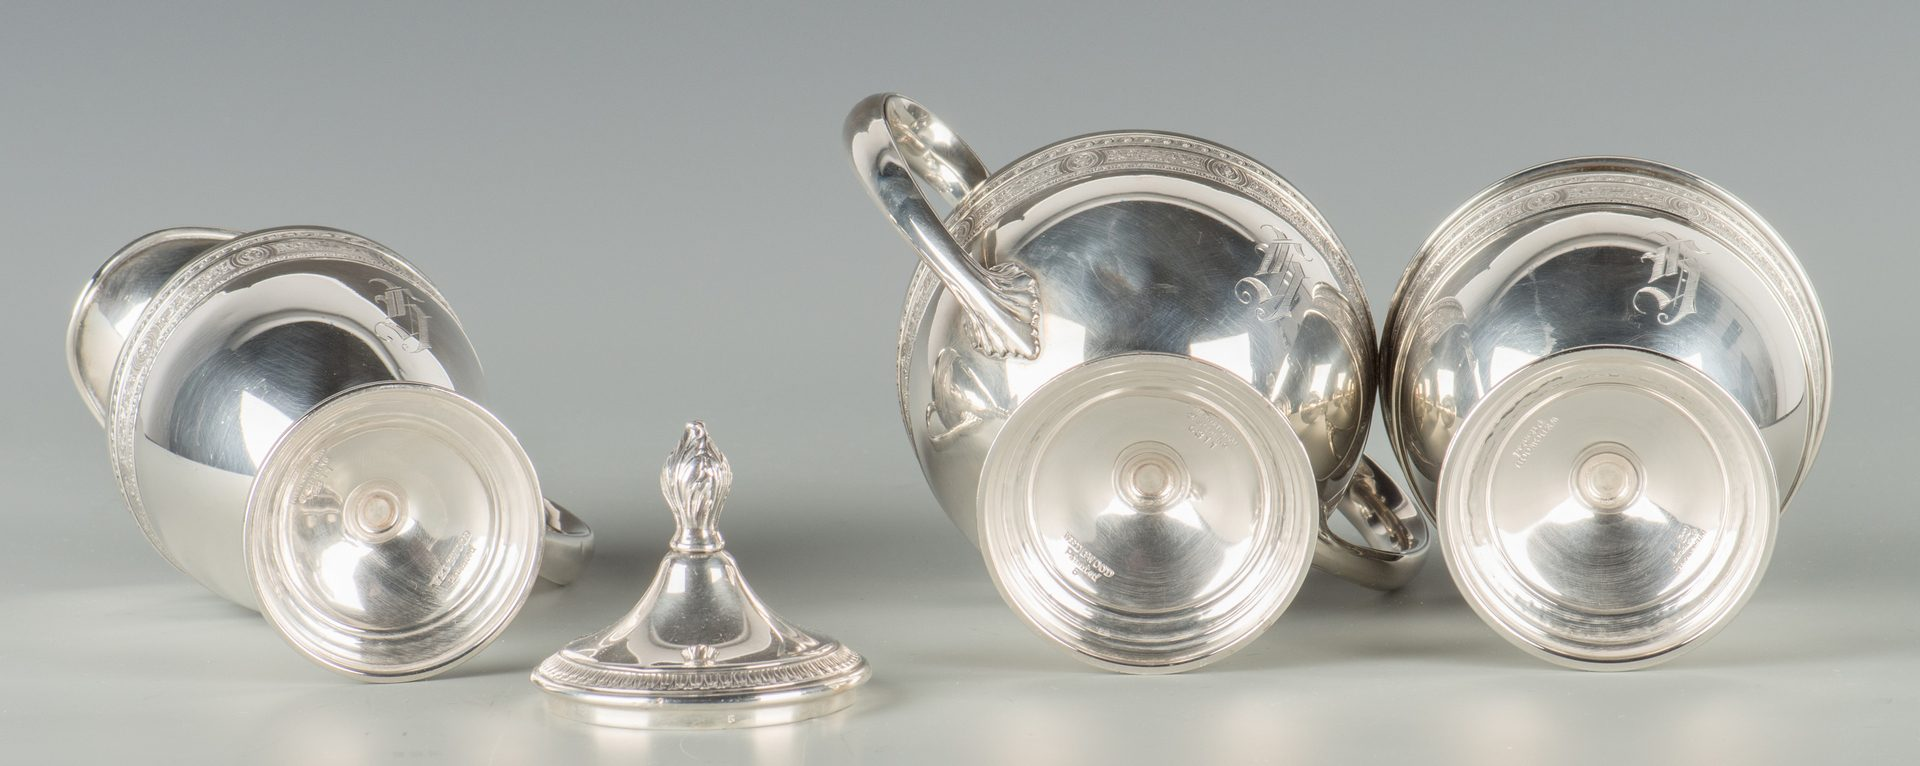 Lot 371: Sterling Tea Set, Wedgwood Pattern